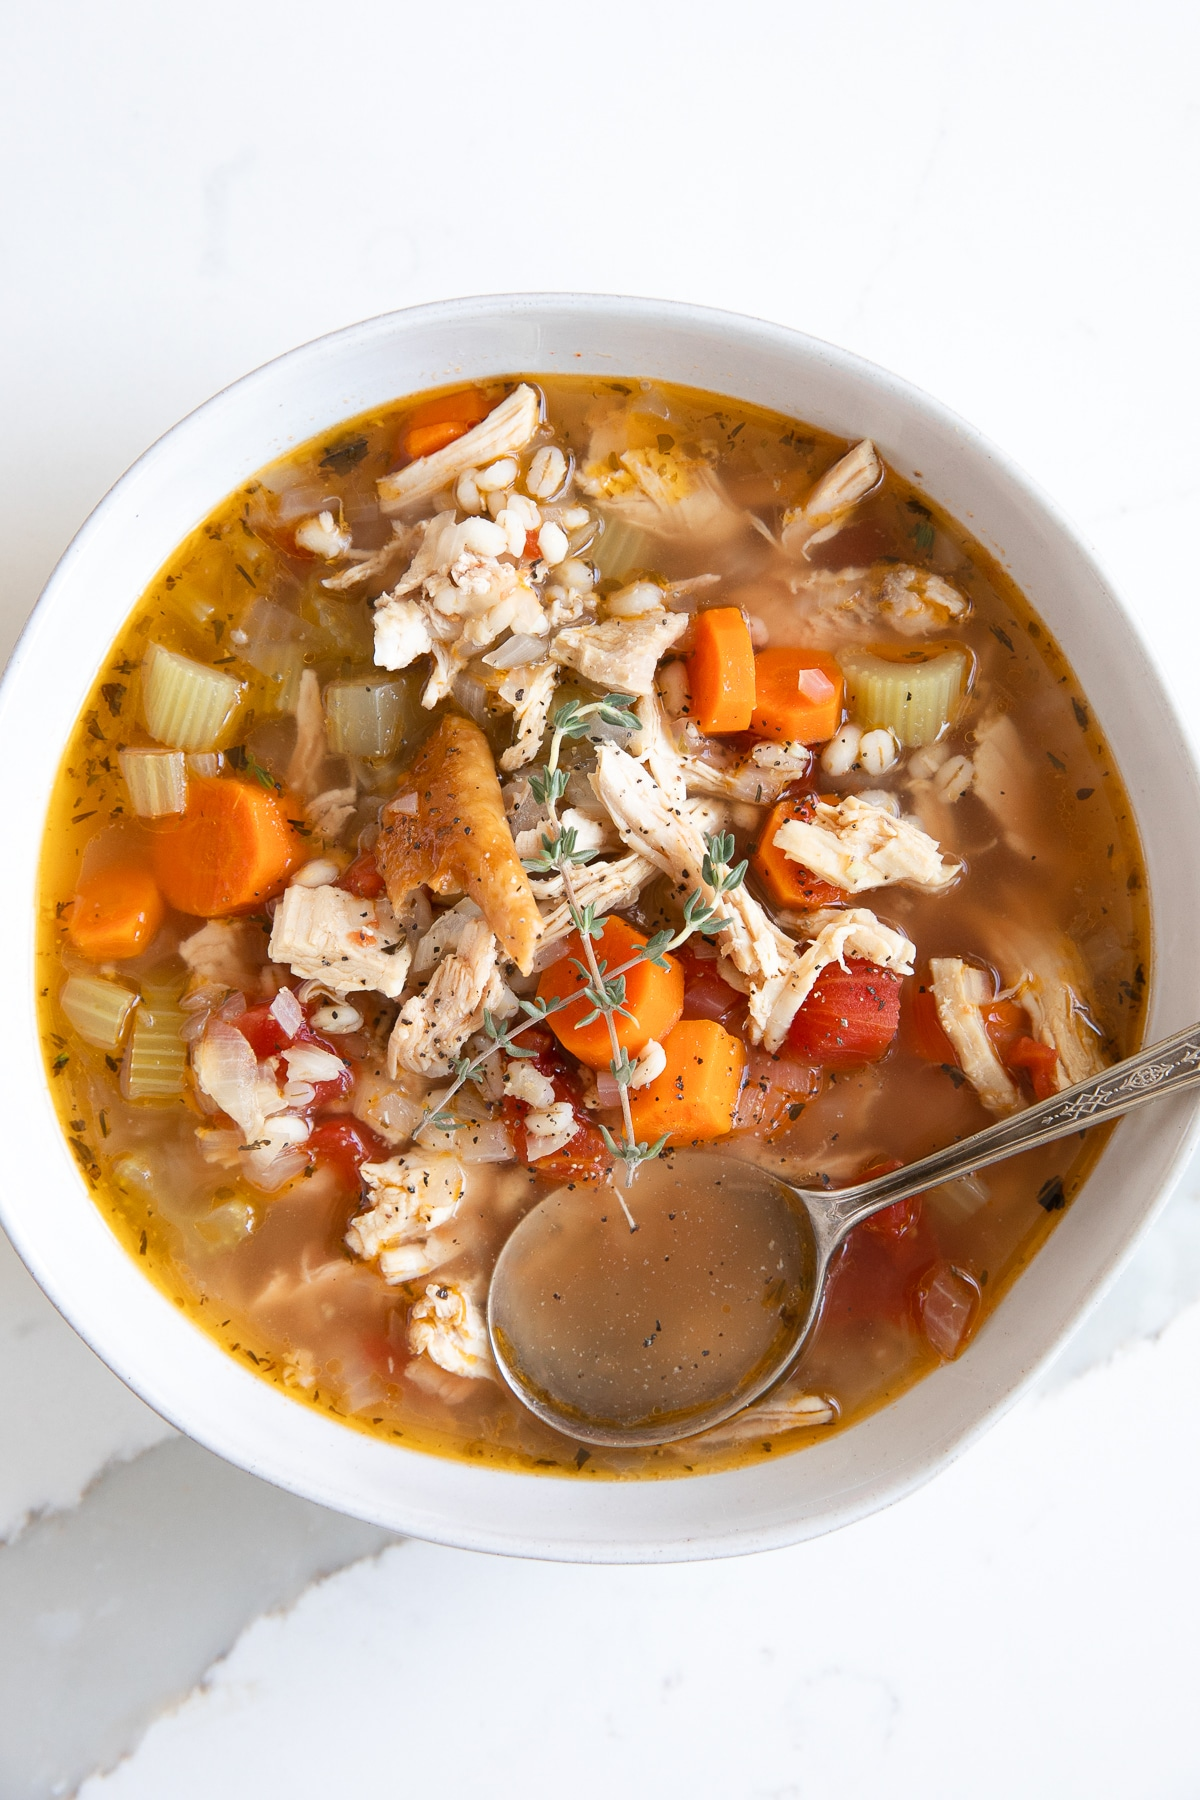 White shallow soup bowl filled with easy turkey soup filled with veggies, tomatoes, turkey, and barley.